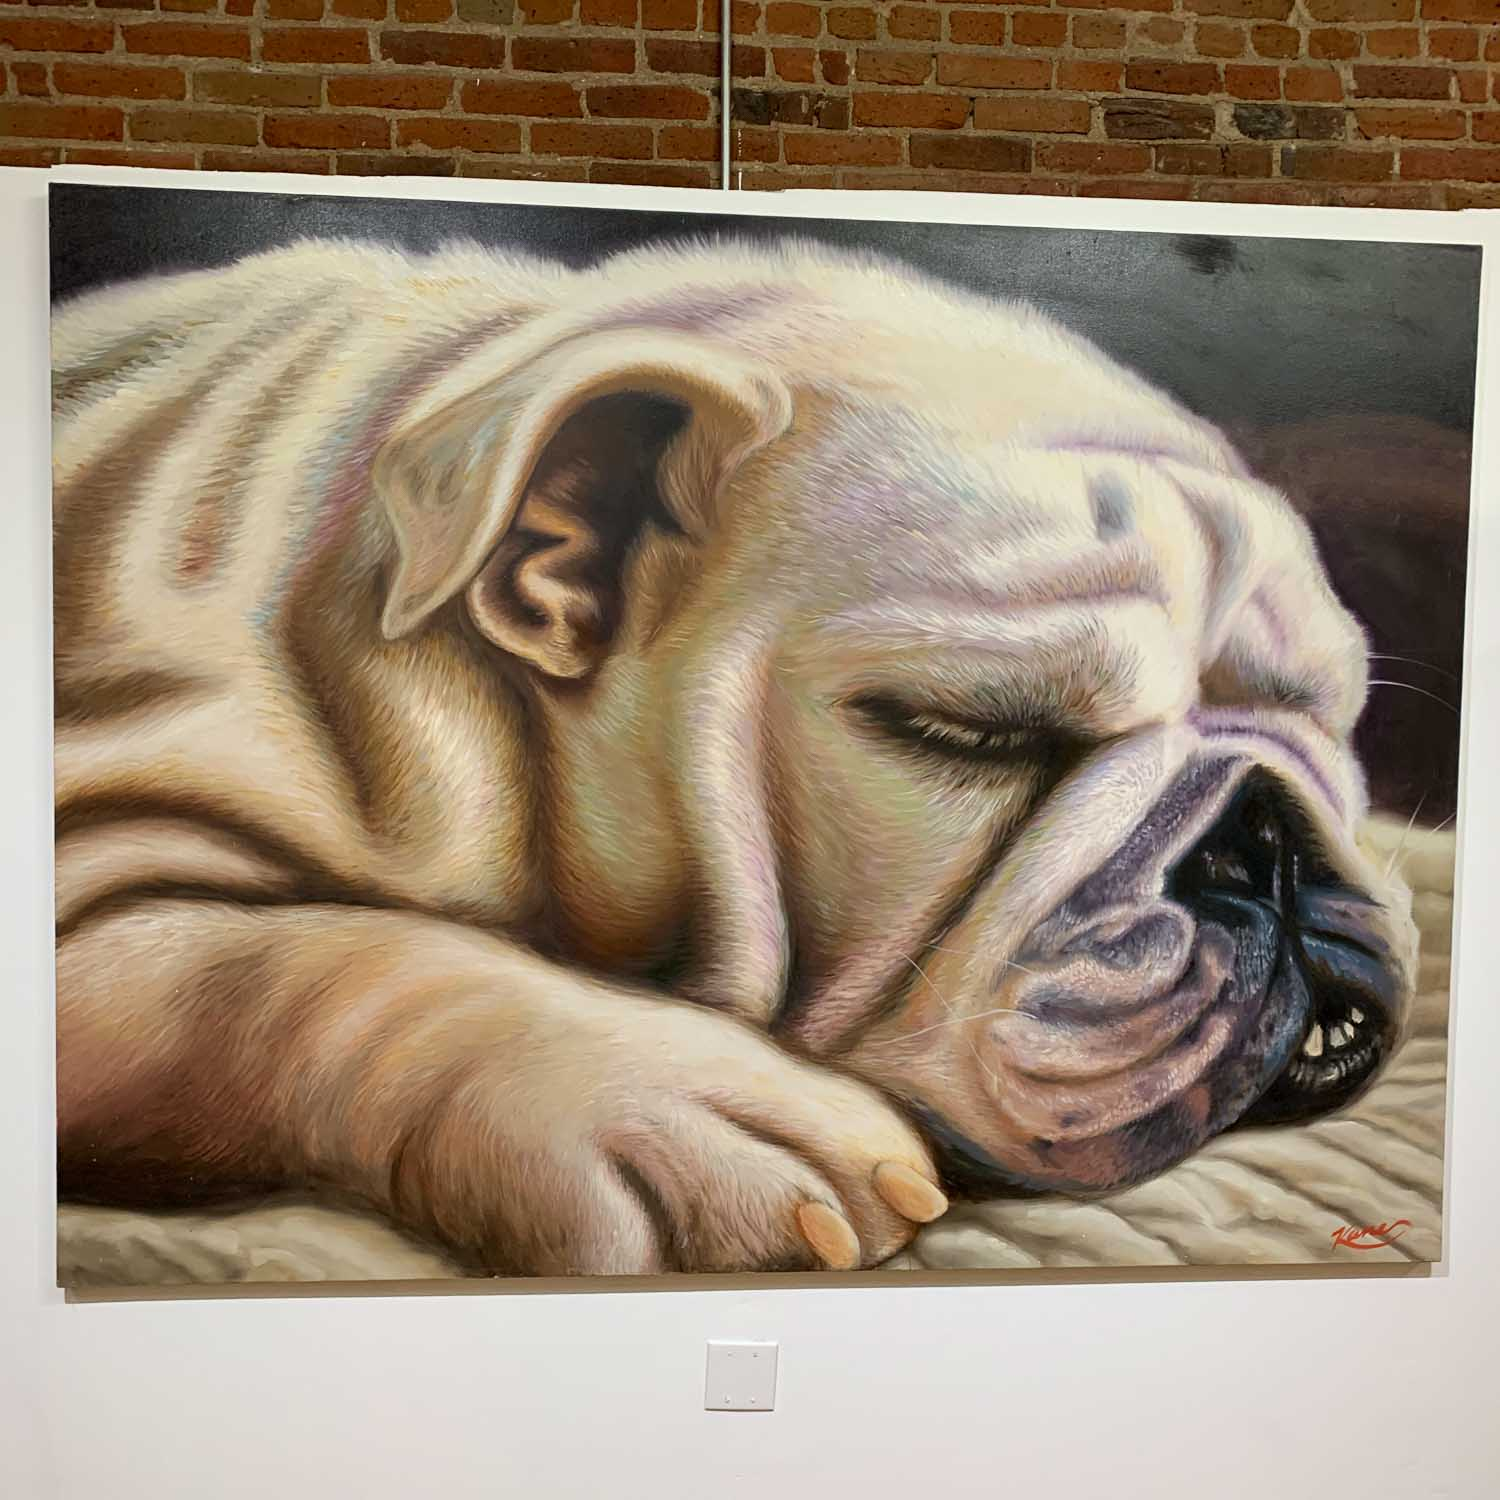 "First painting done of my dog/muse ""Bouguereau"" that I did in NYC/2007. This is the beginning of using my bulldog as an inspiration for my dog portraits that I do today. Oil on canvas 72"" x 96"". —Patrick Kane McGregor"